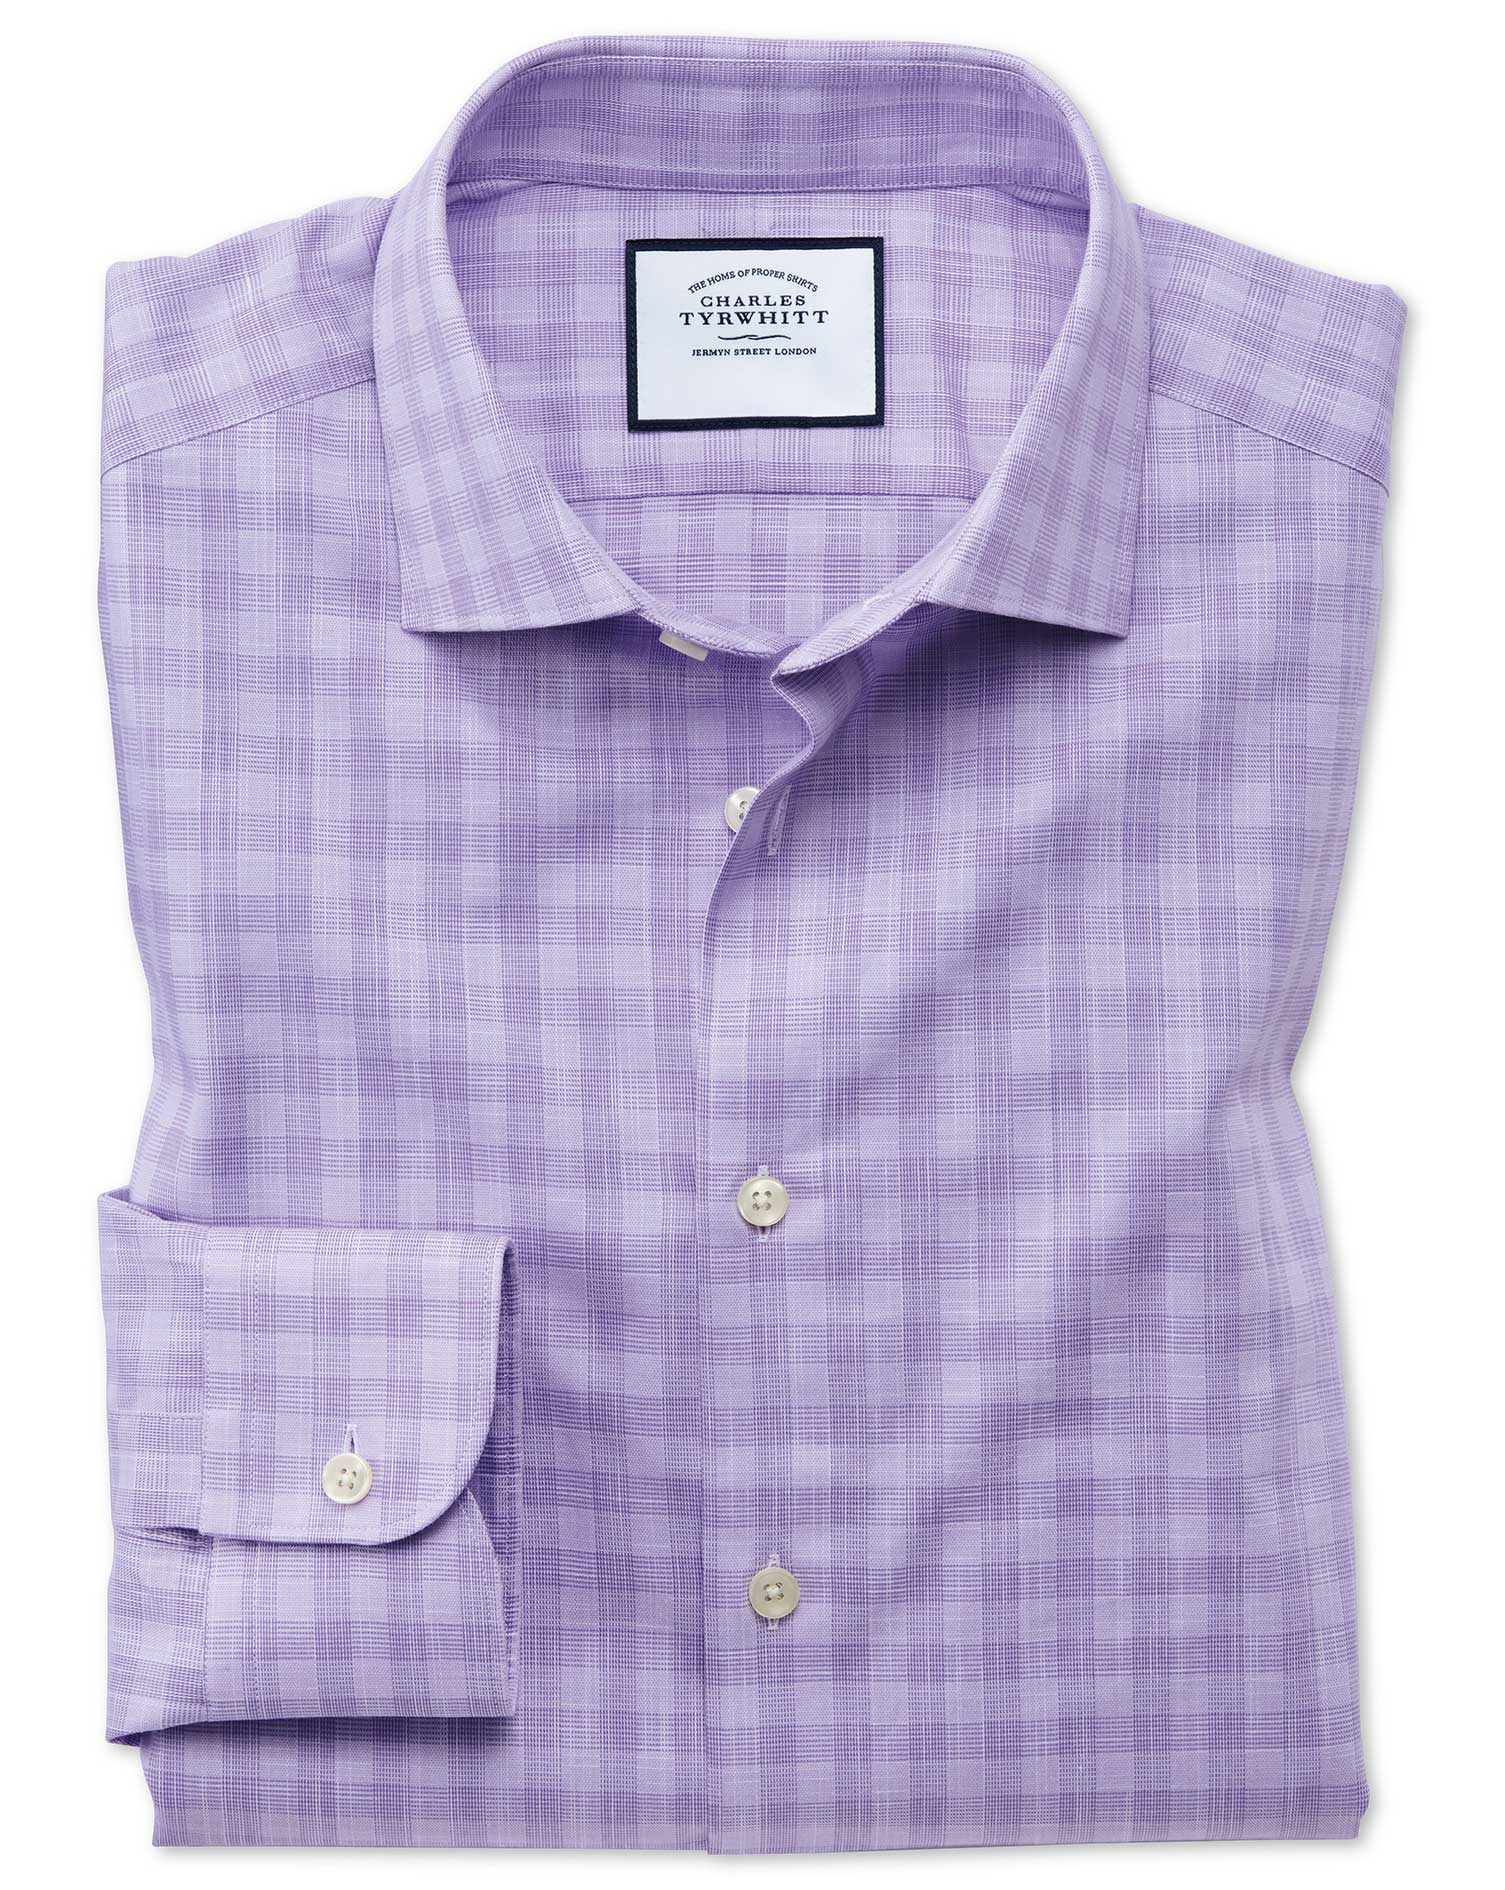 Classic Fit Business Casual Egyptian Cotton Slub Lilac Check Formal Shirt Single Cuff Size 15/35 by